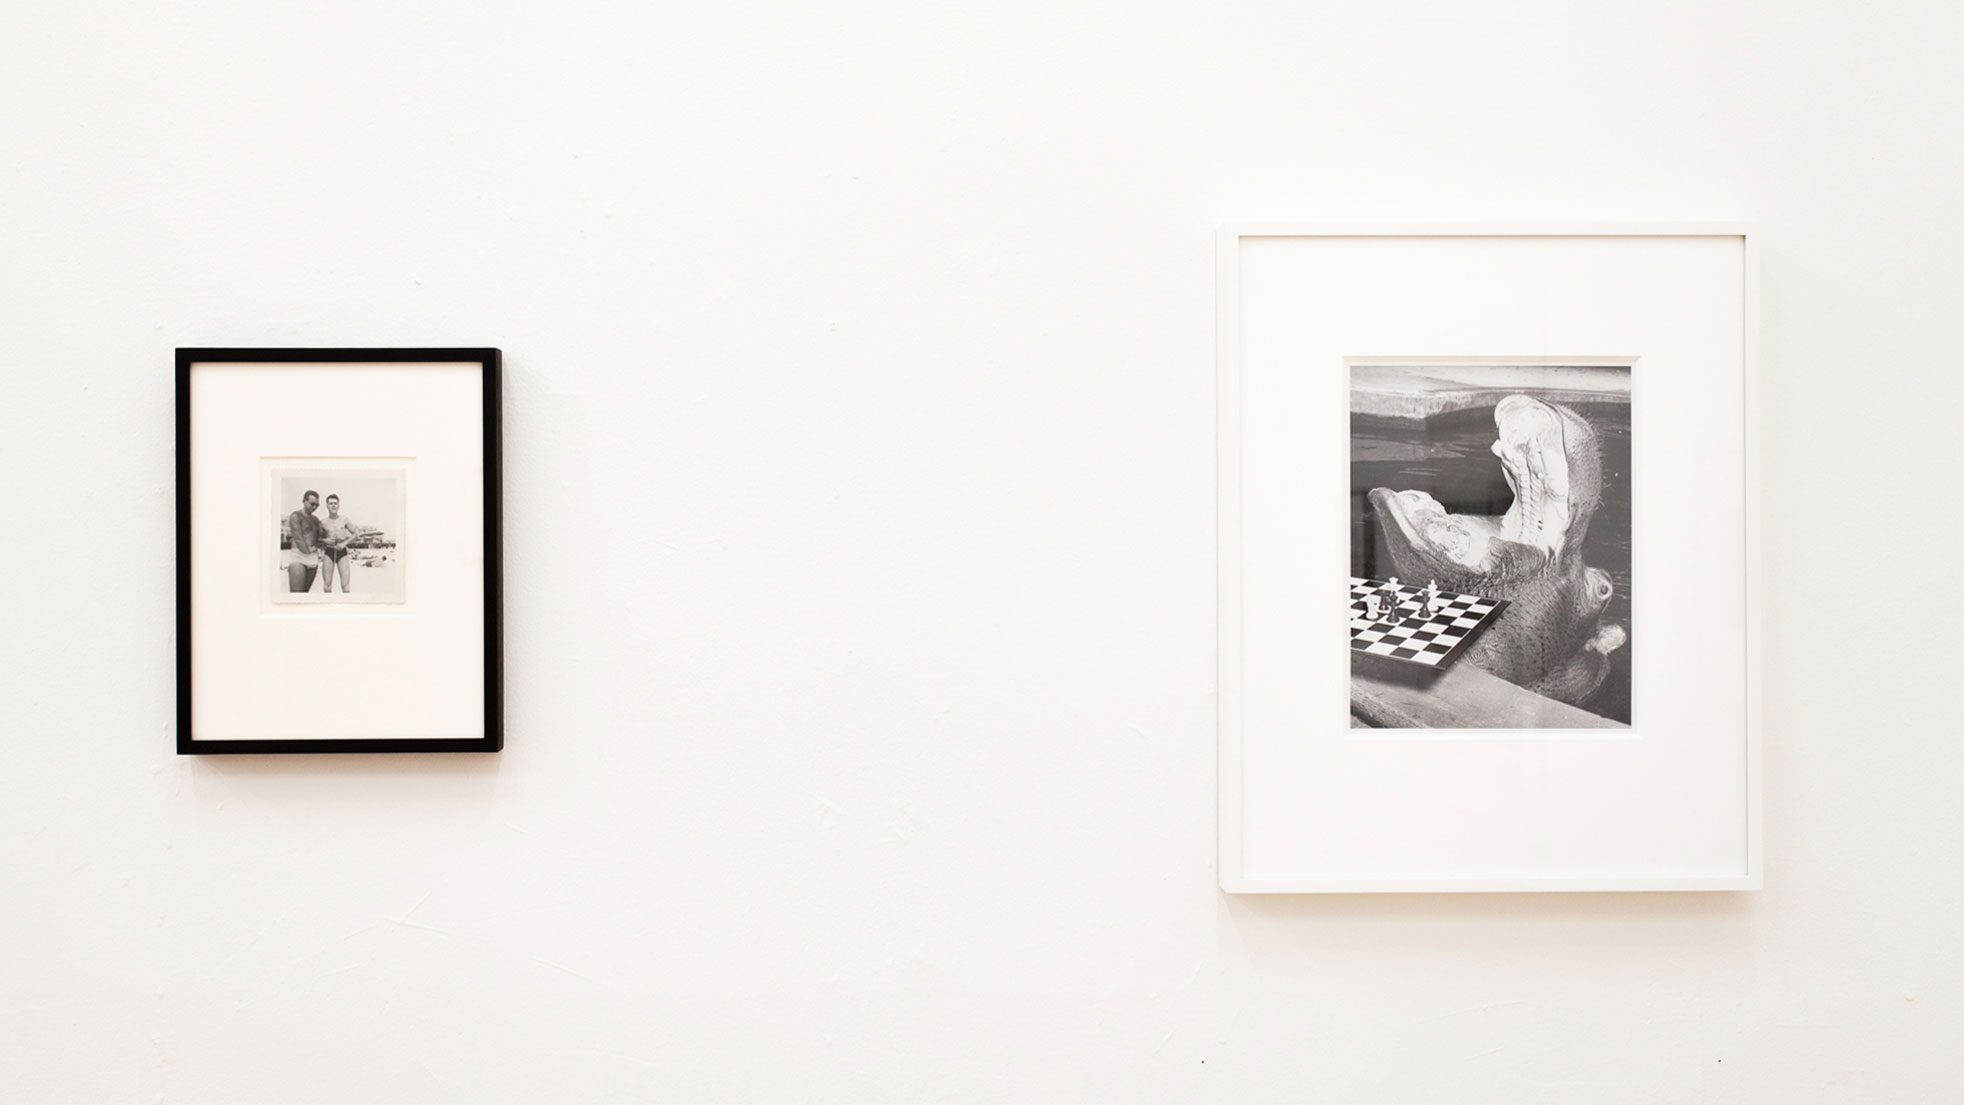 Installation view of 'Fries With That...?' L: Photographer unknown, [Men in swim trunks], ca. 1950; R: Photographer unknown, 'Untitled,' ca. 1960.